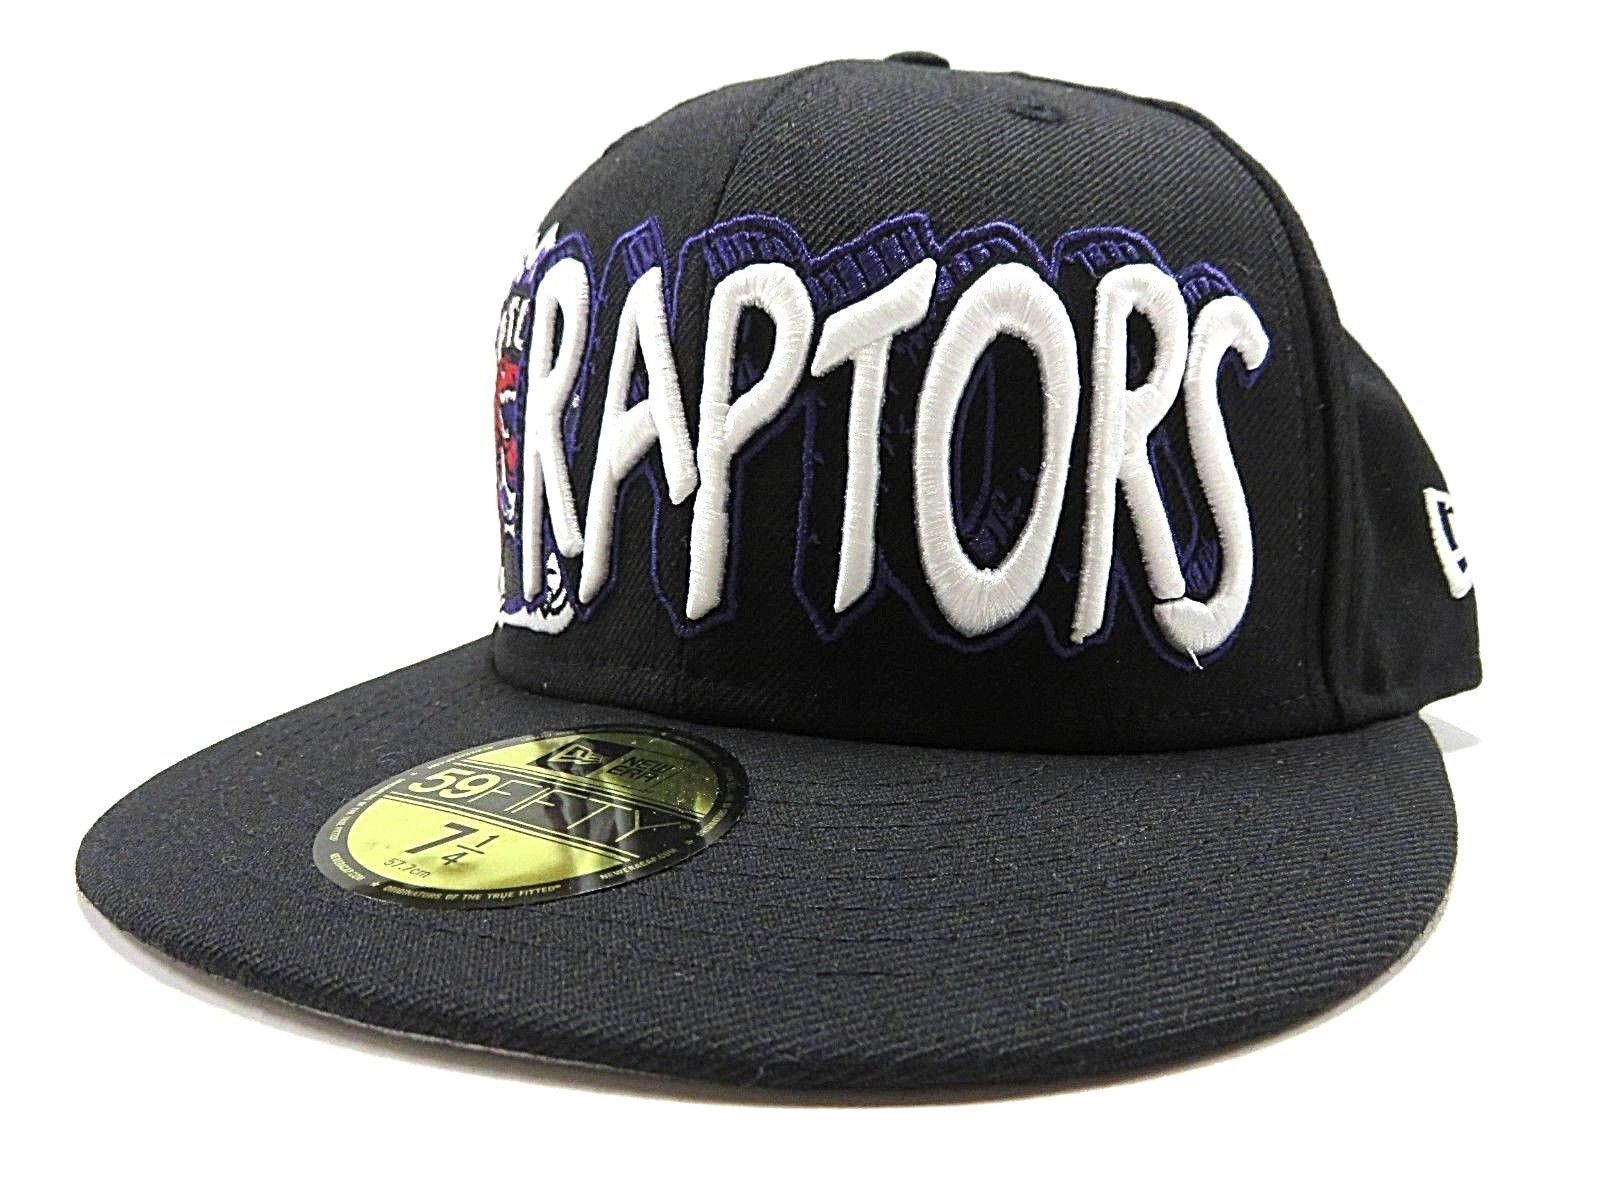 NWT New Era NBA Toronto Raptors Basketball Fitted Hat Adult Size 7 1/4 100% Wool